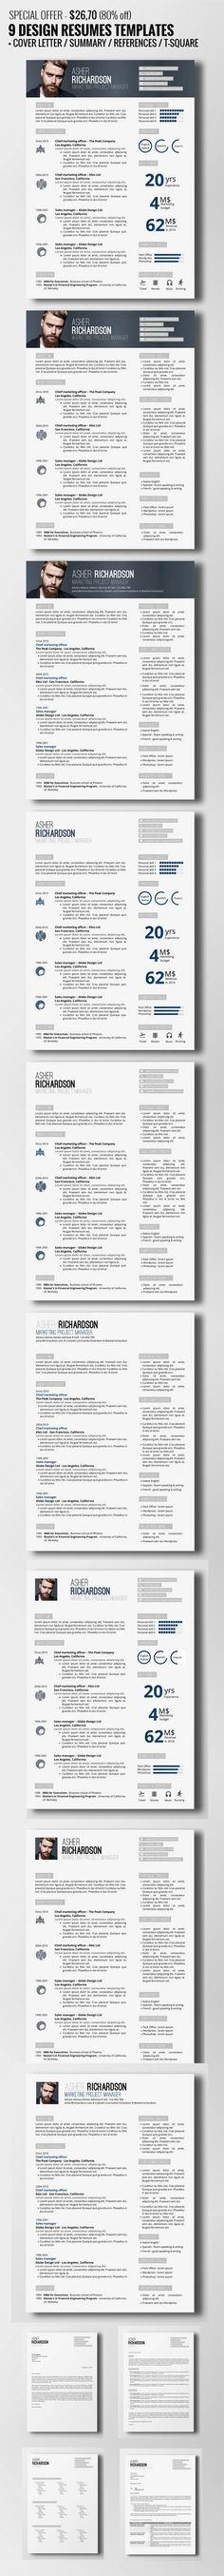 435 best Resume images on Pinterest Resume design, Design resume - example artist resume